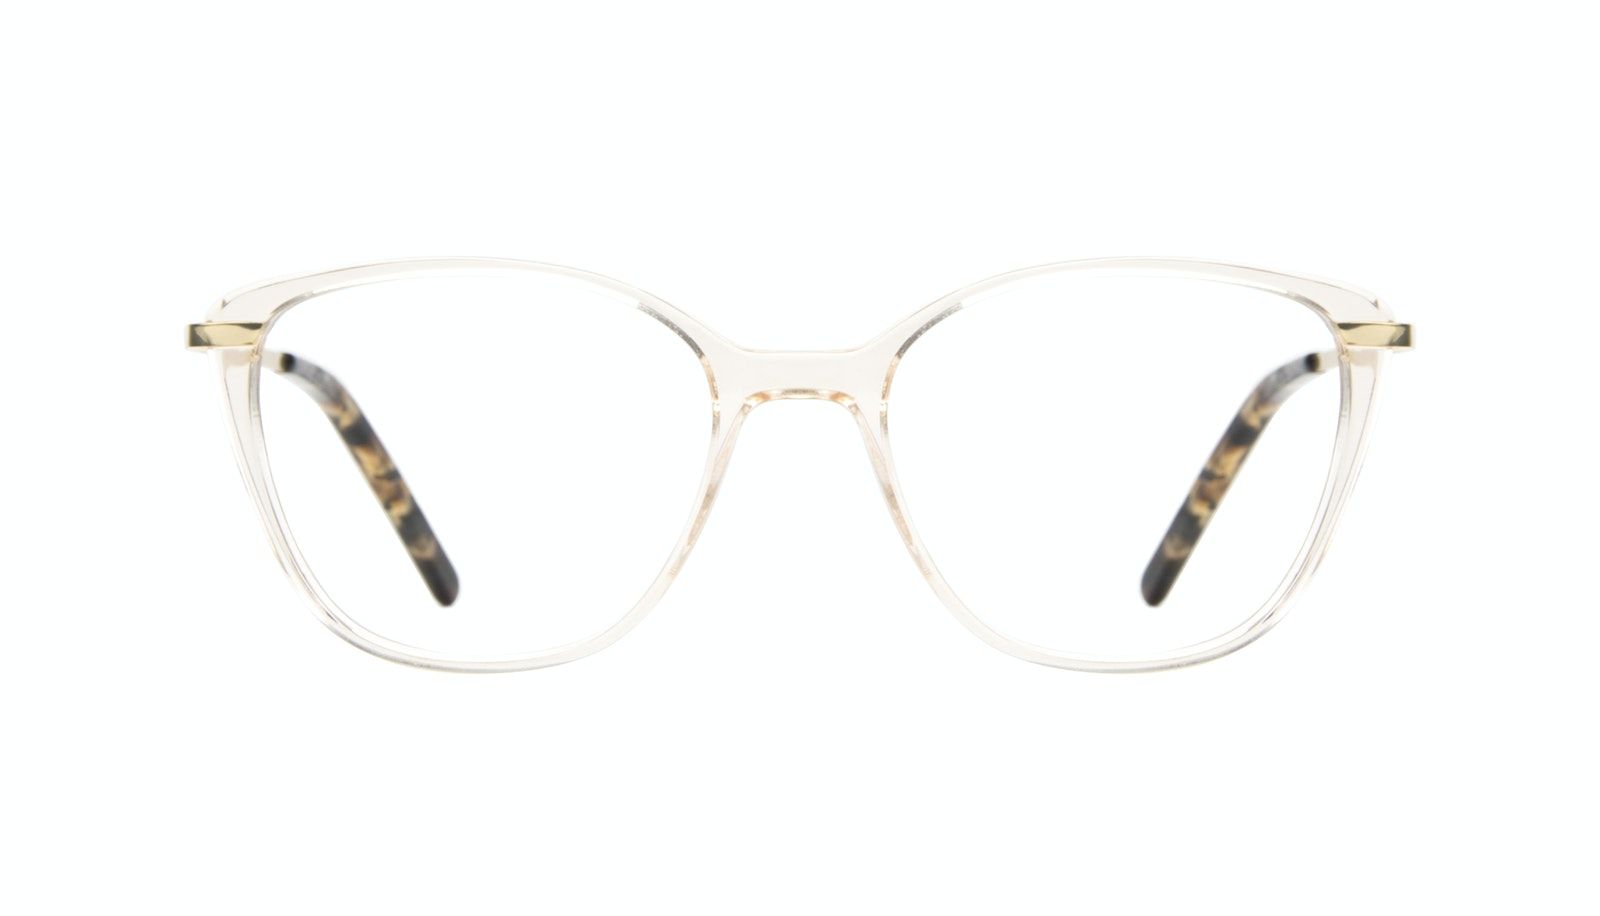 Affordable Fashion Glasses Cat Eye Rectangle Square Eyeglasses Women Illusion Blond Metal